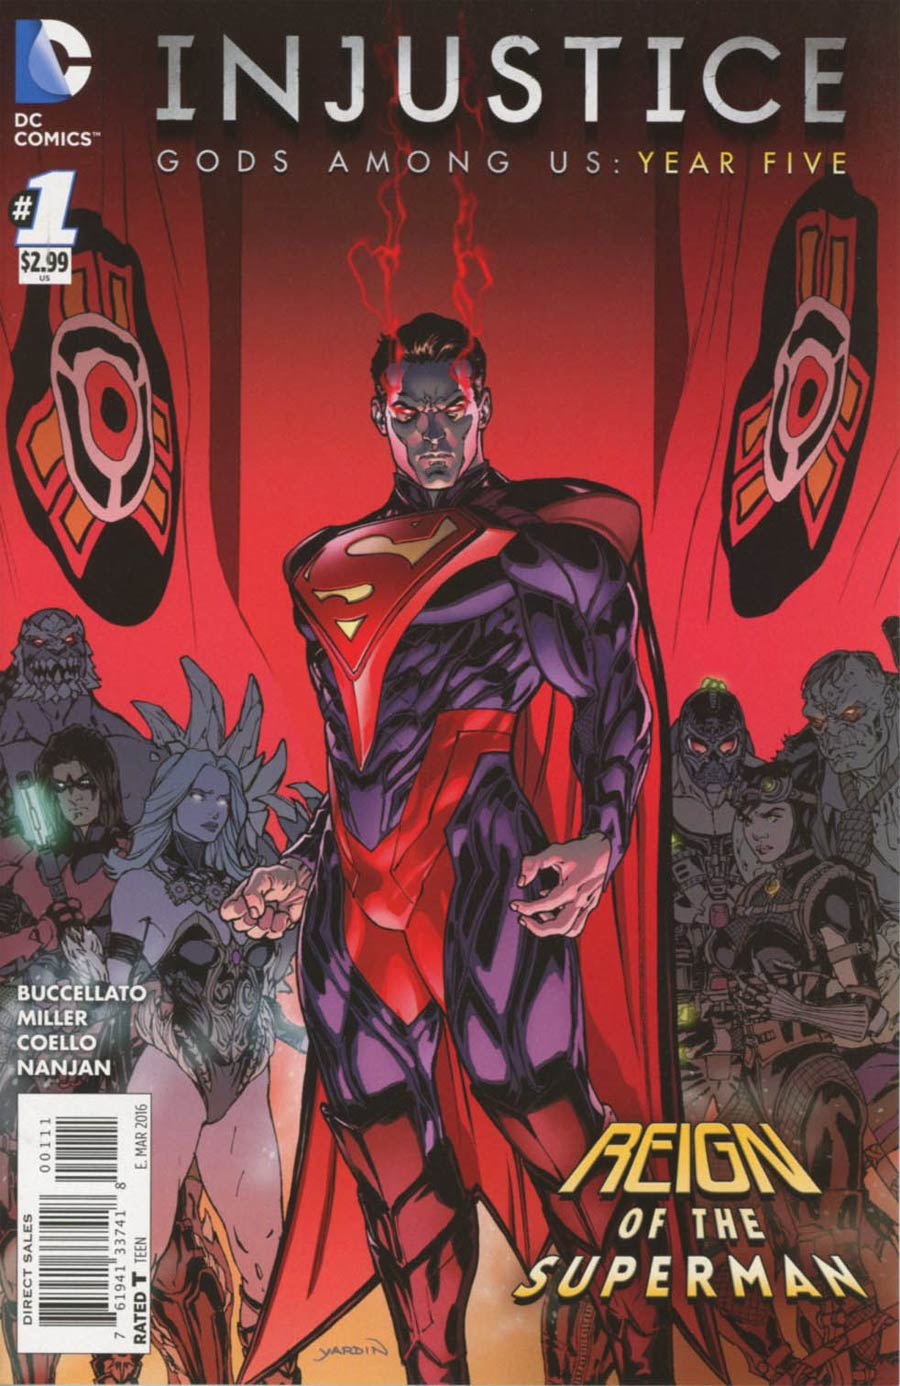 Injustice Gods Among Us Year Five #1 Cover A Regular David Yardin Cover